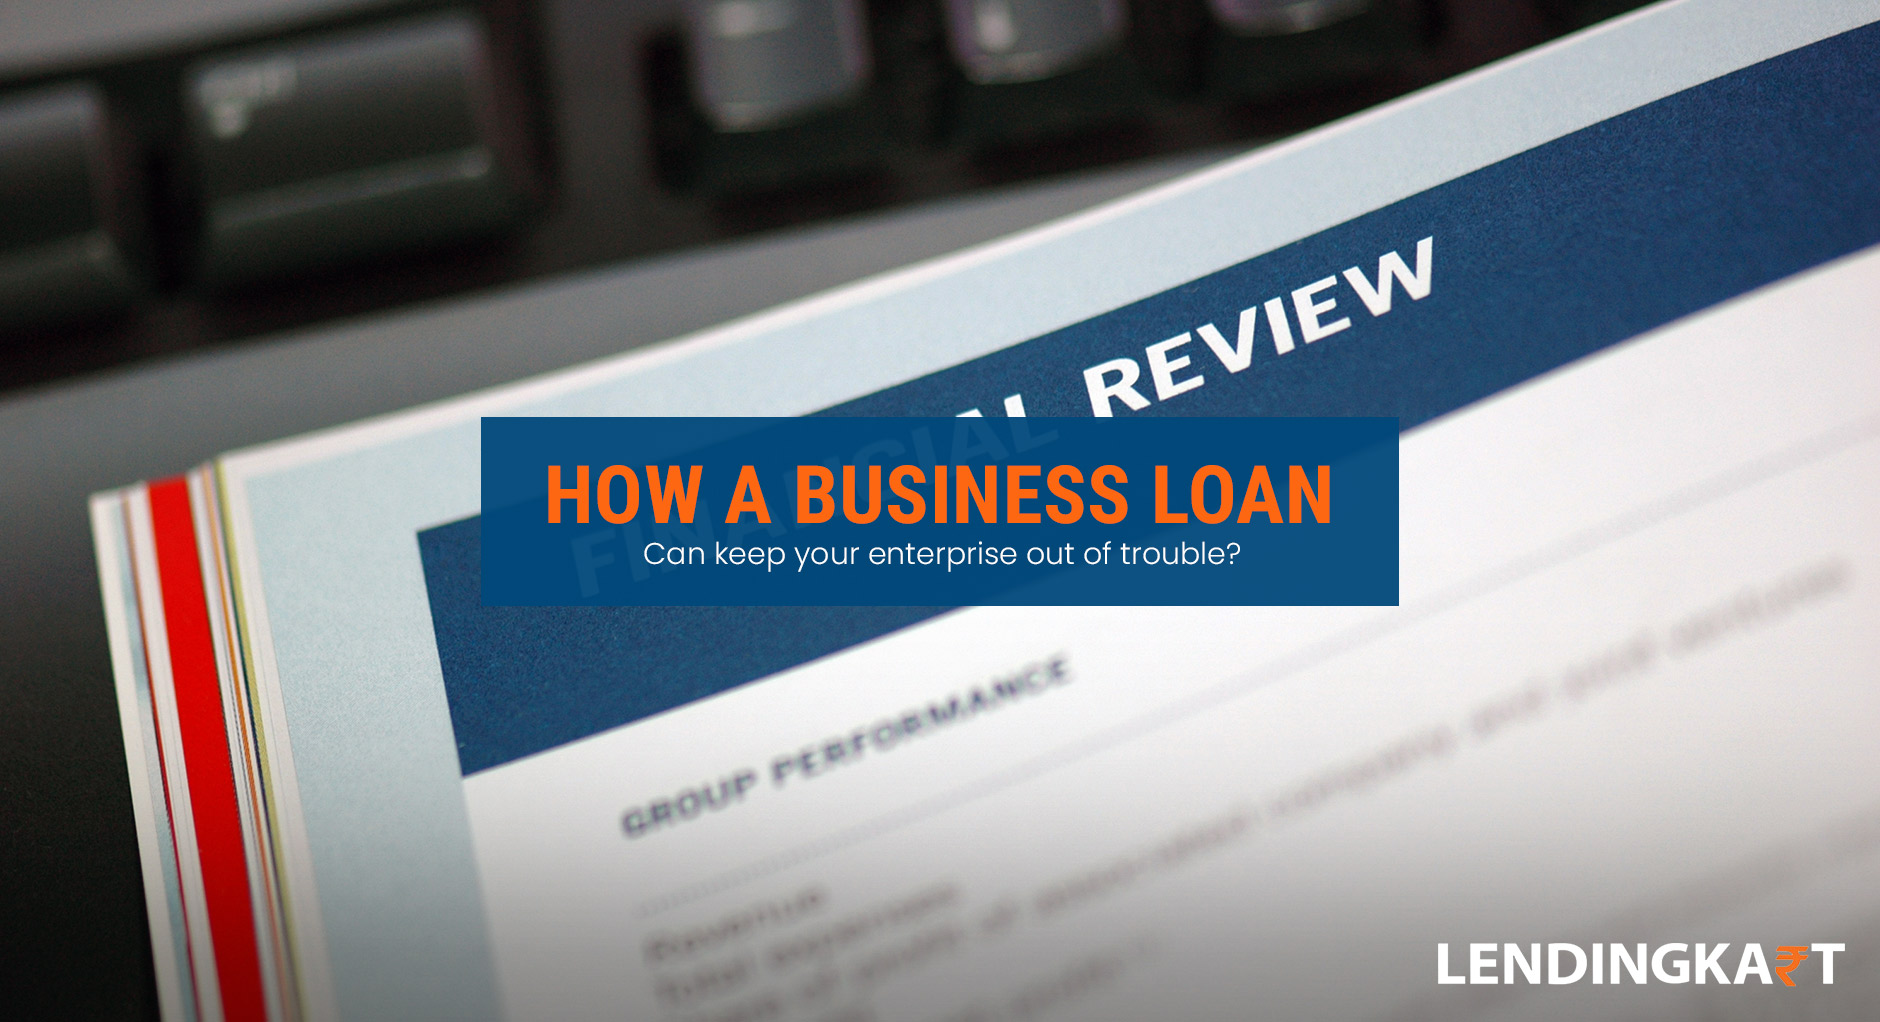 How a Business Loan Can Keep Your Enterprise out of Trouble